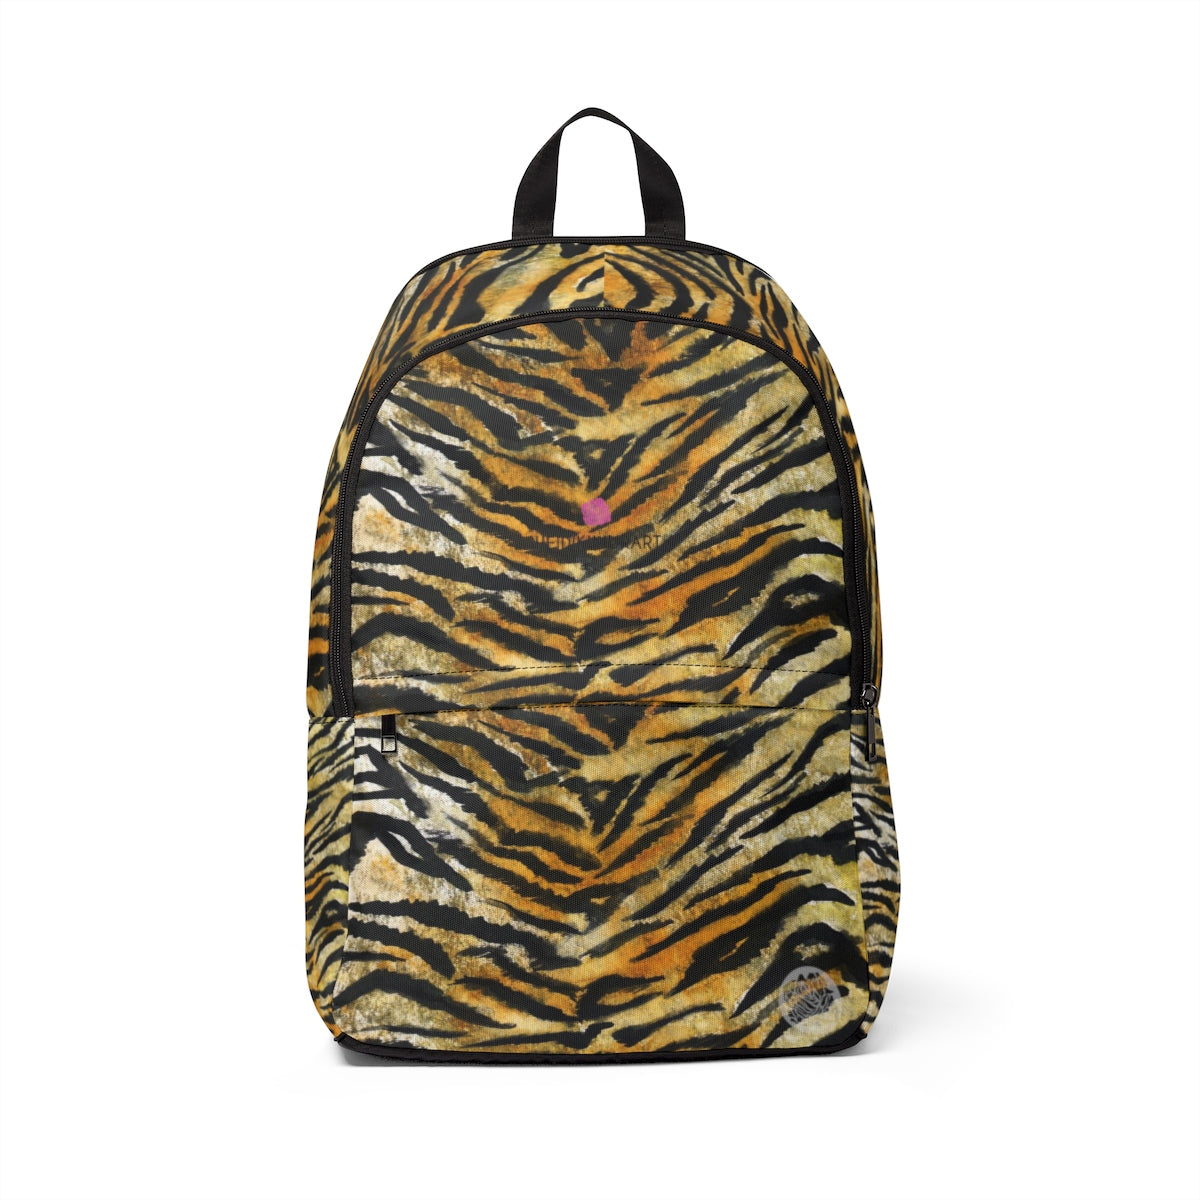 Brown Tiger Stripe Animal Skin Unisex Large Size Waterproof Fabric Designer Backpack-Backpack-One Size-Heidi Kimura Art LLC Brown Tiger Stripe Backpack, Brown Tiger Stripe Animal Skin Unisex Large Size Waterproof Fabric Designer Back to School or Work Backpack